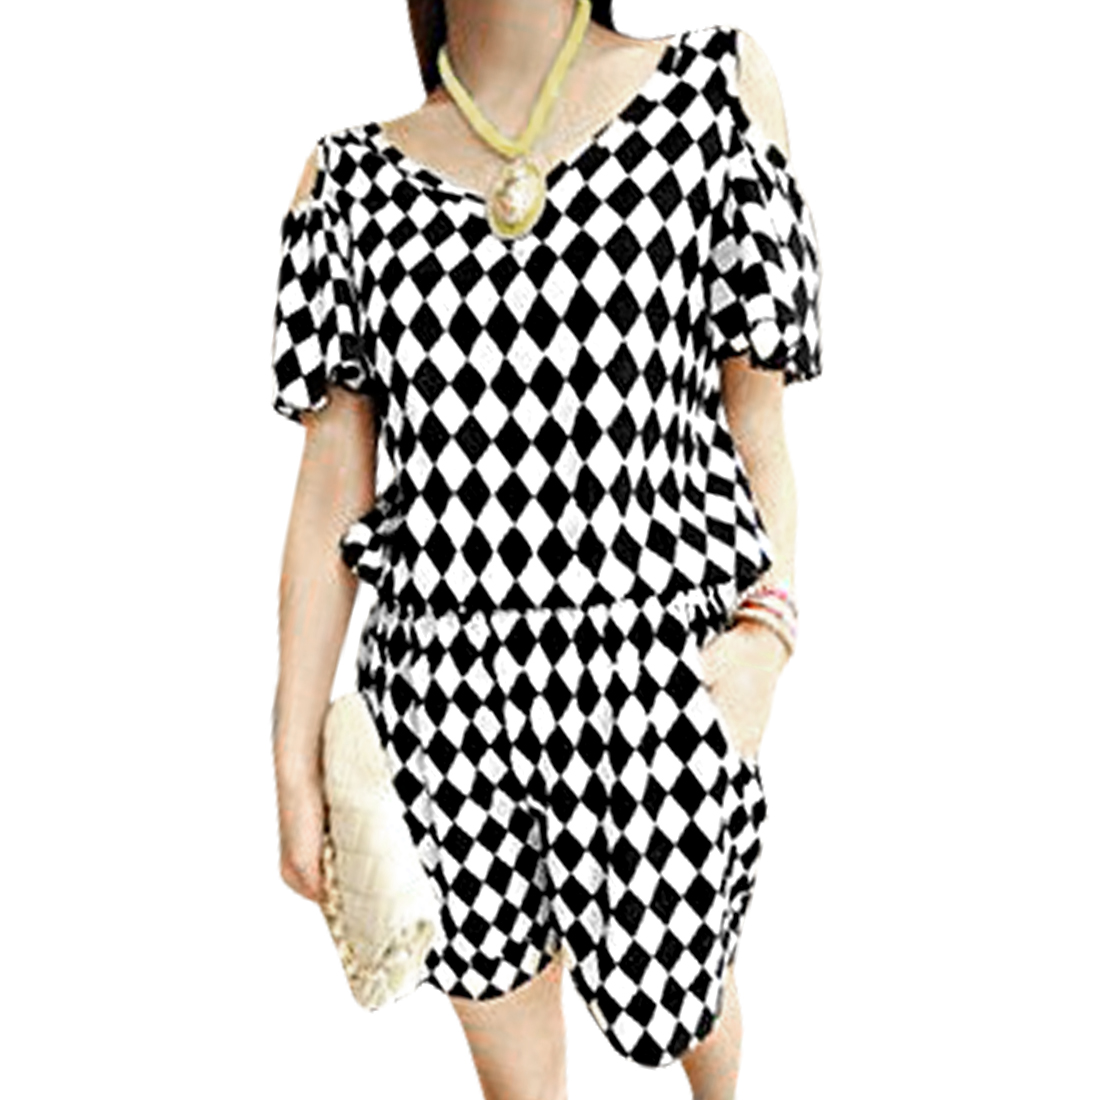 Lady Fashion V Neck Cut Out Sleeve Argyle Prints Black White Romper XS